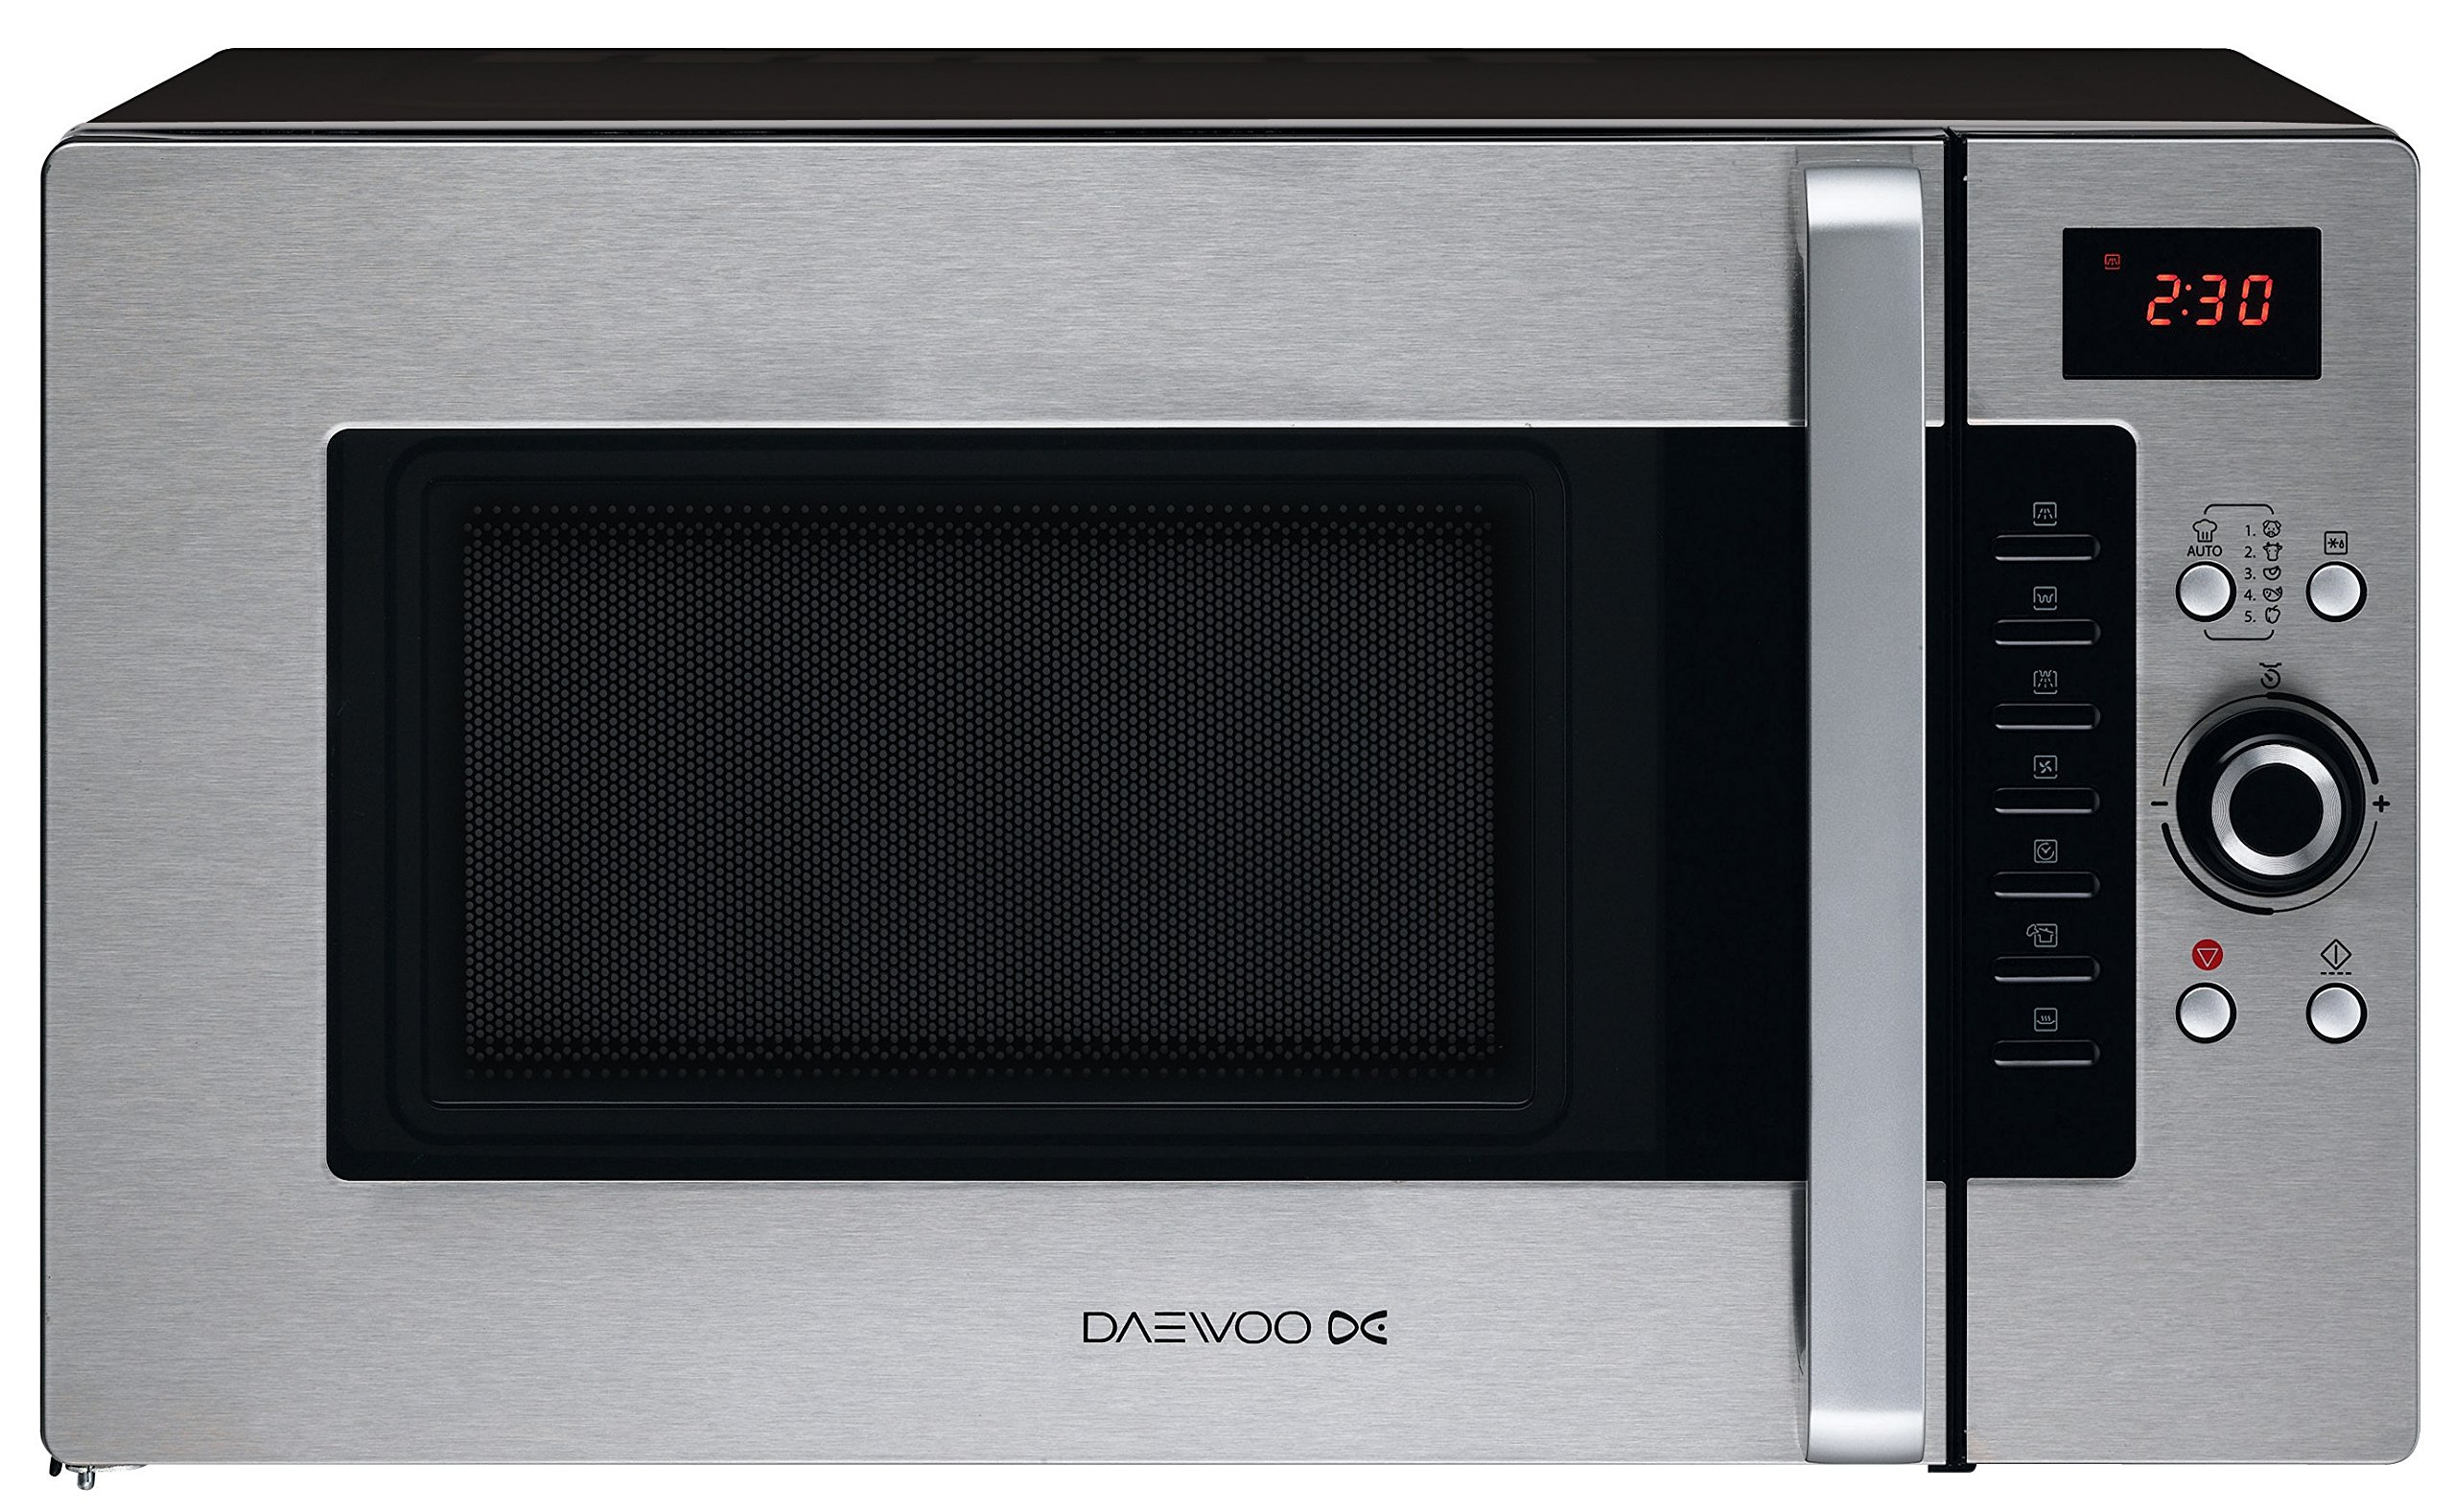 Daewoo KOC-9Q4DS Convection Microwave Oven 1.0 Cu. Ft., 900W | Stainless Steel by Daewoo (Image #1)